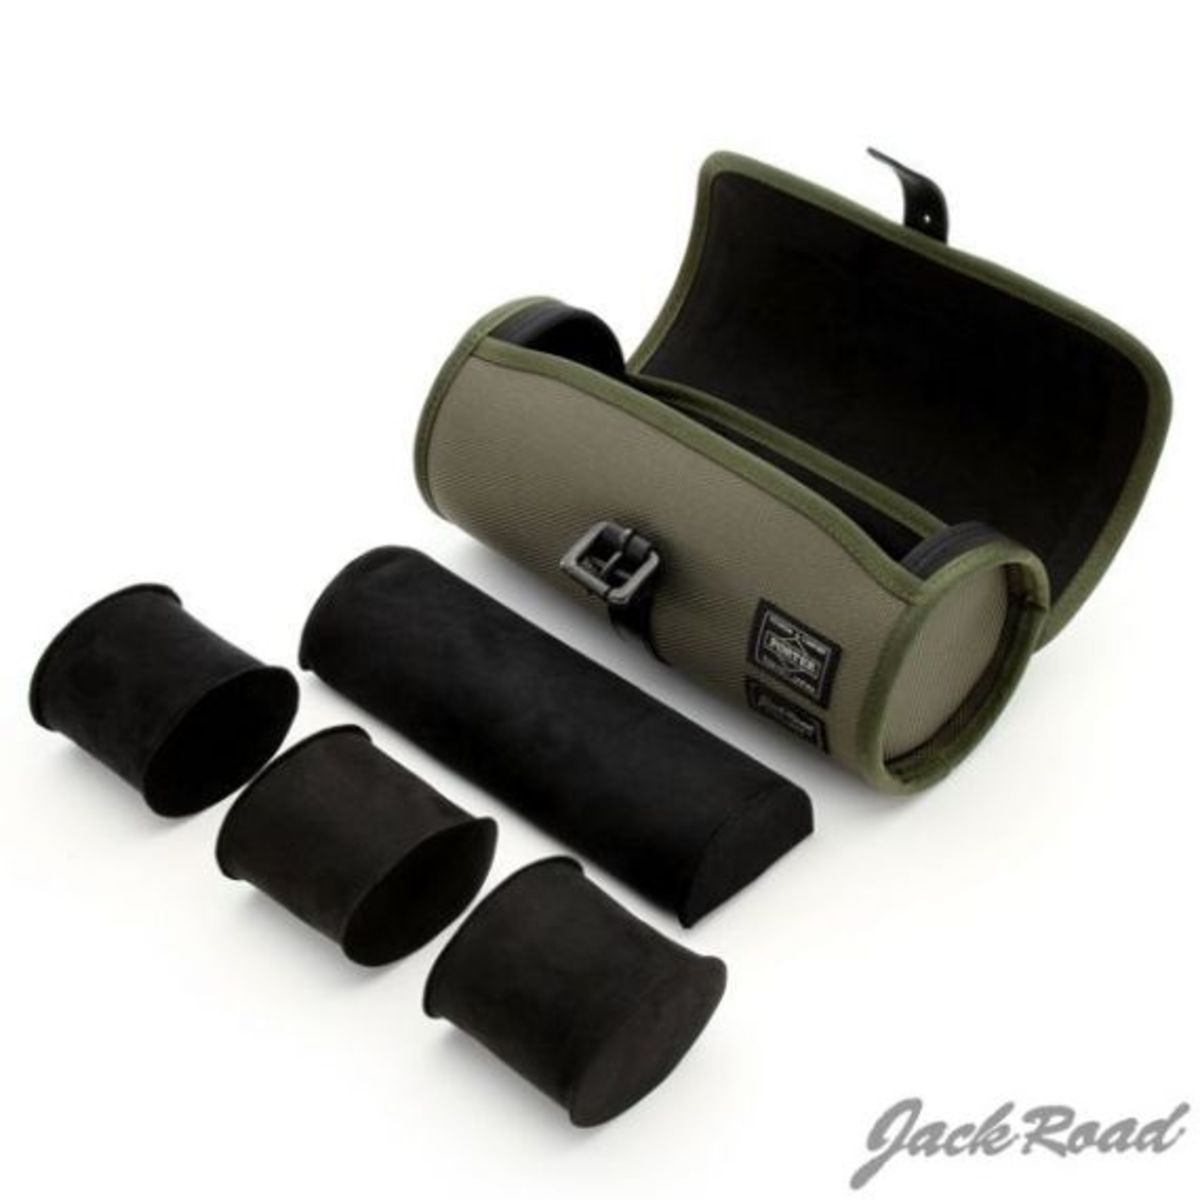 jack-road-porter-watch-carrying-case-05